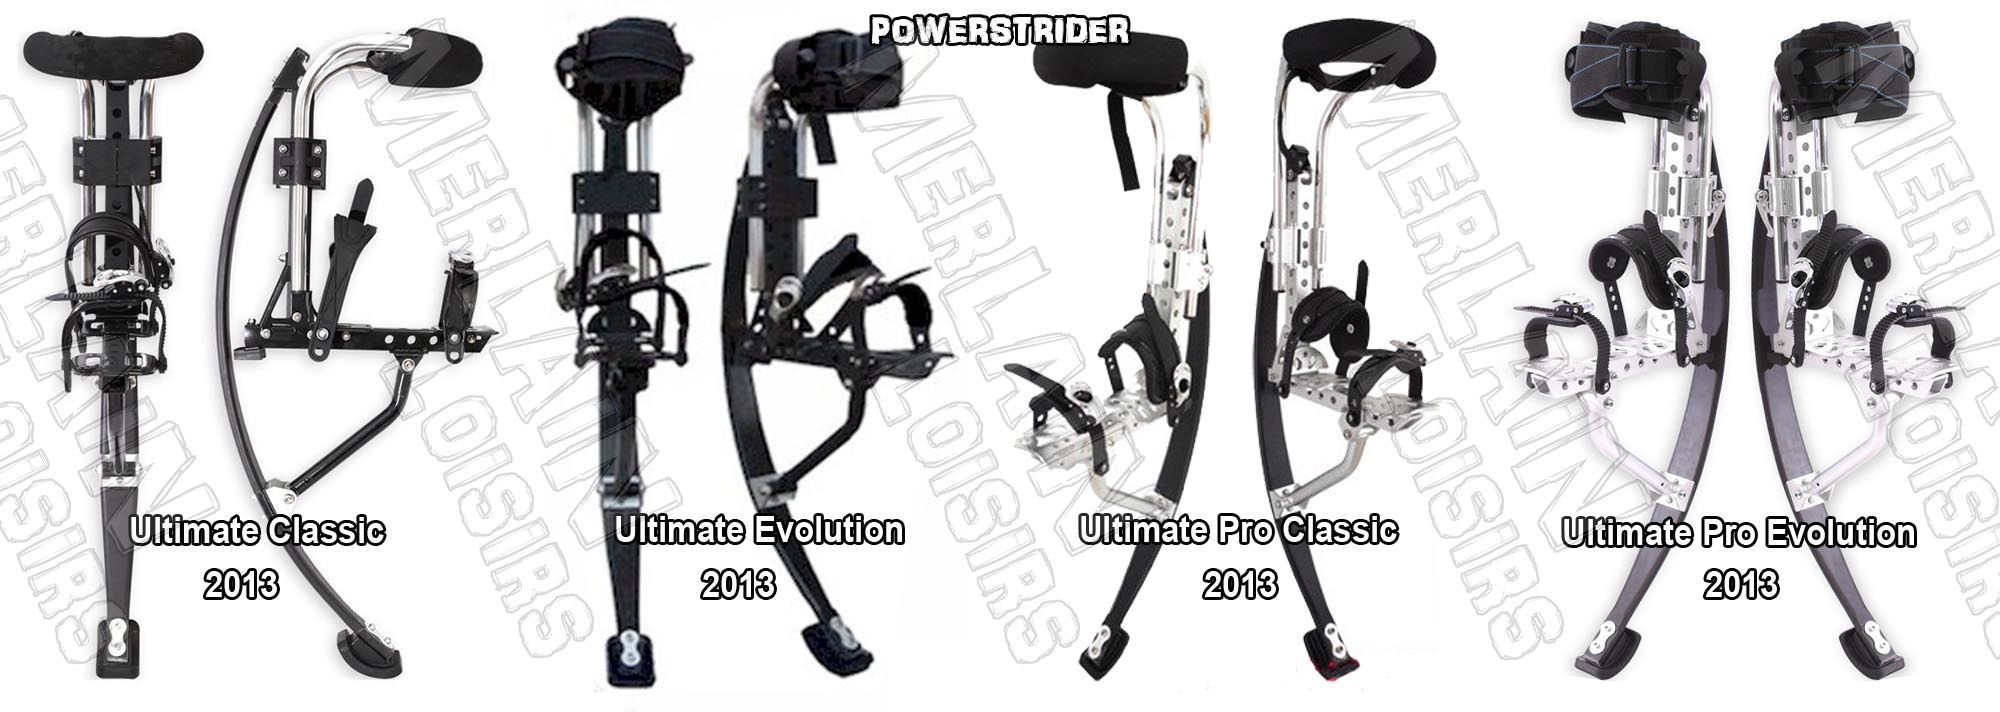 powerstrider ultimate evolution classic pro adulte 2013